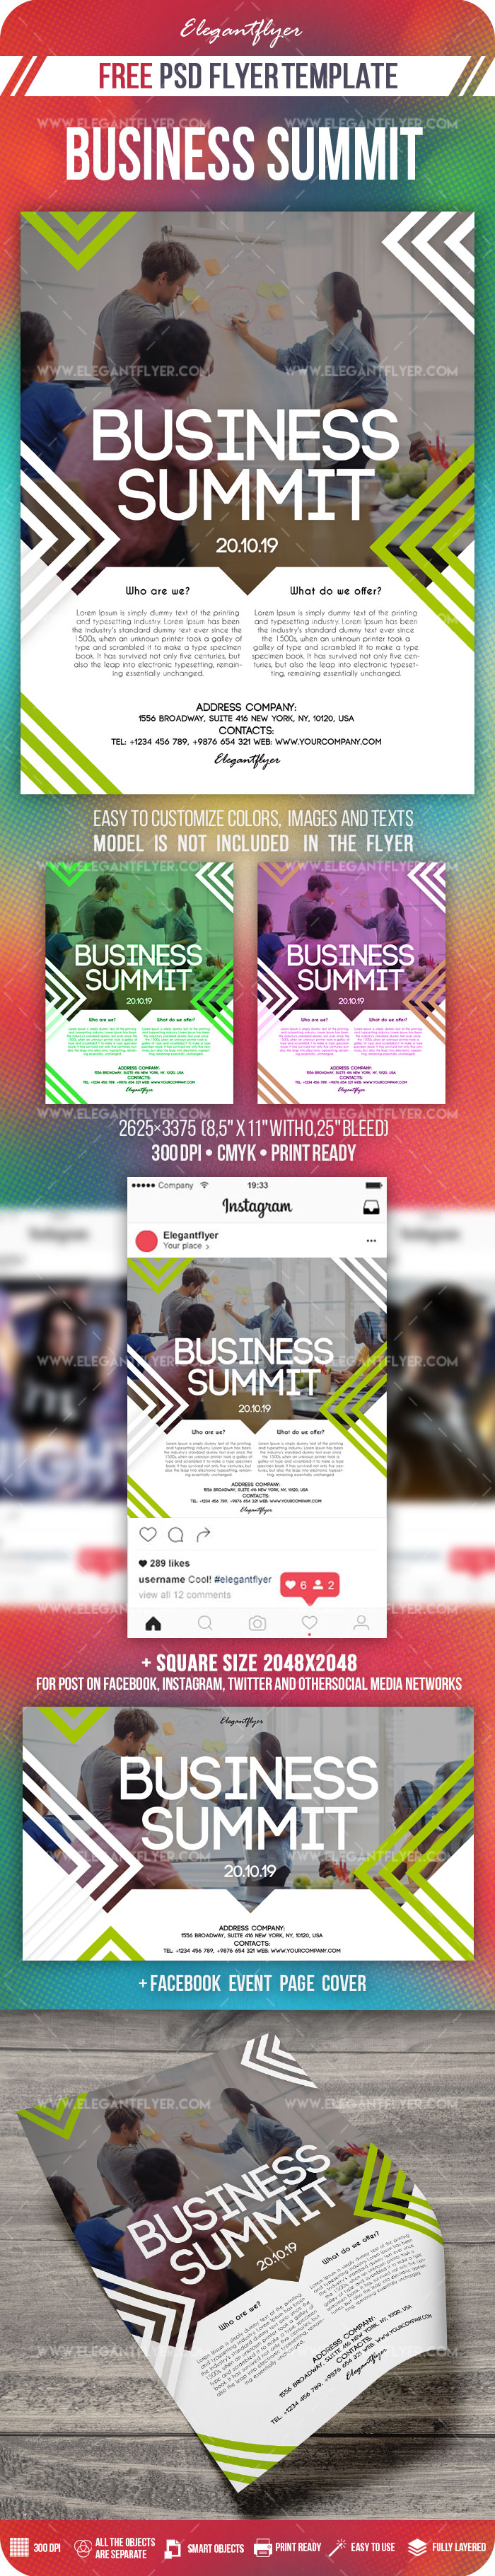 Business Summit – Free PSD Flyer Template + Facebook Cover + Instagram Post